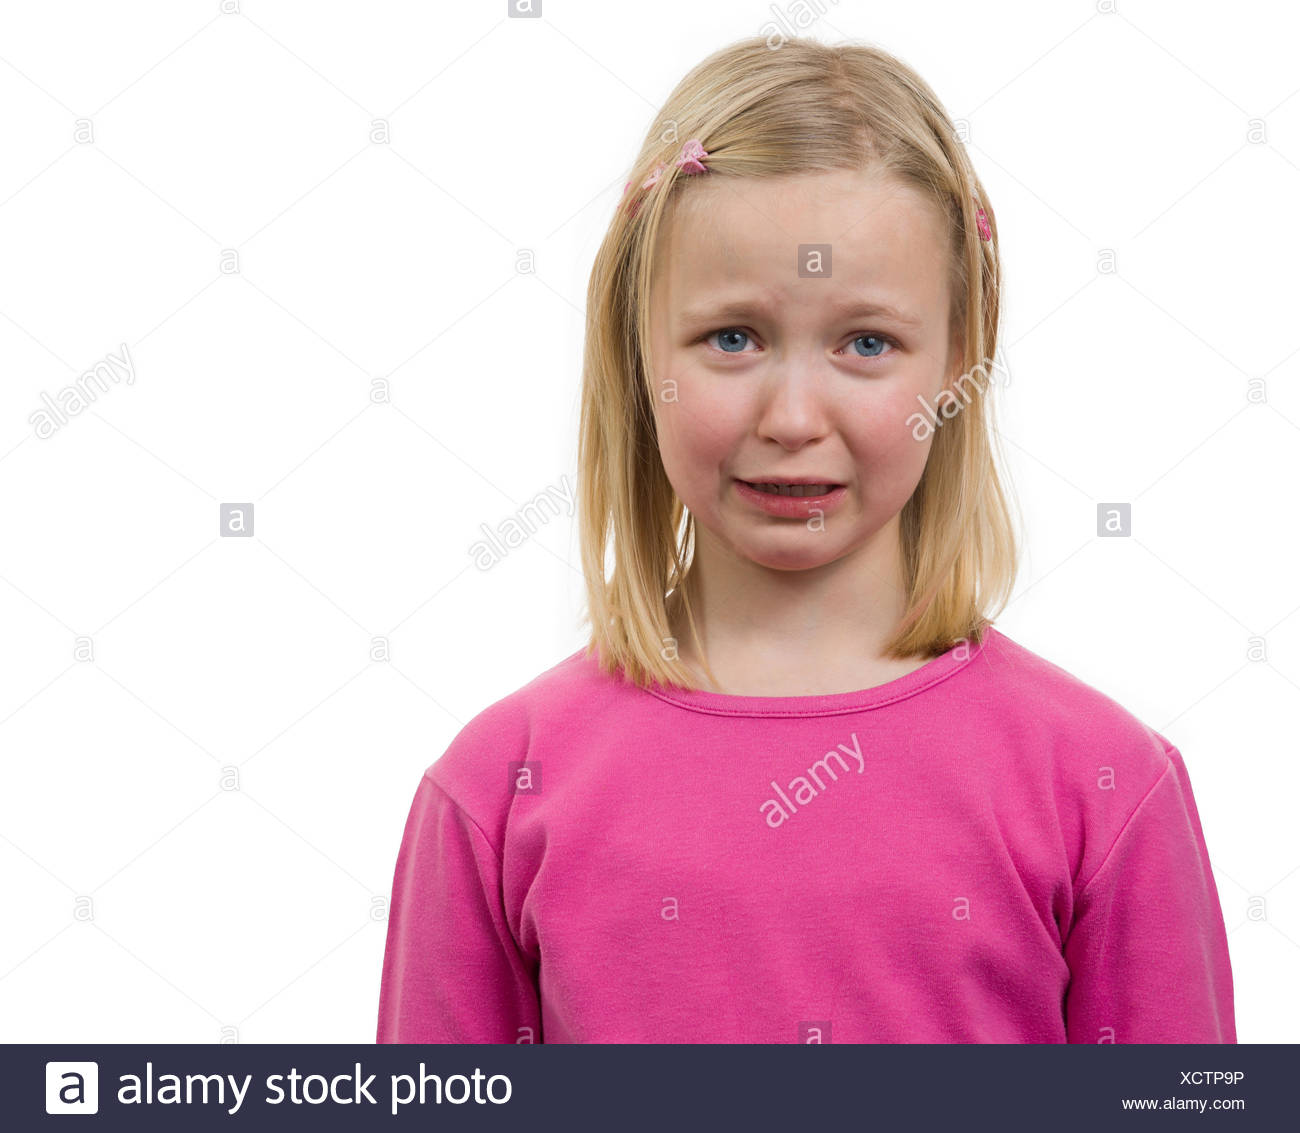 whiny - Stock Image